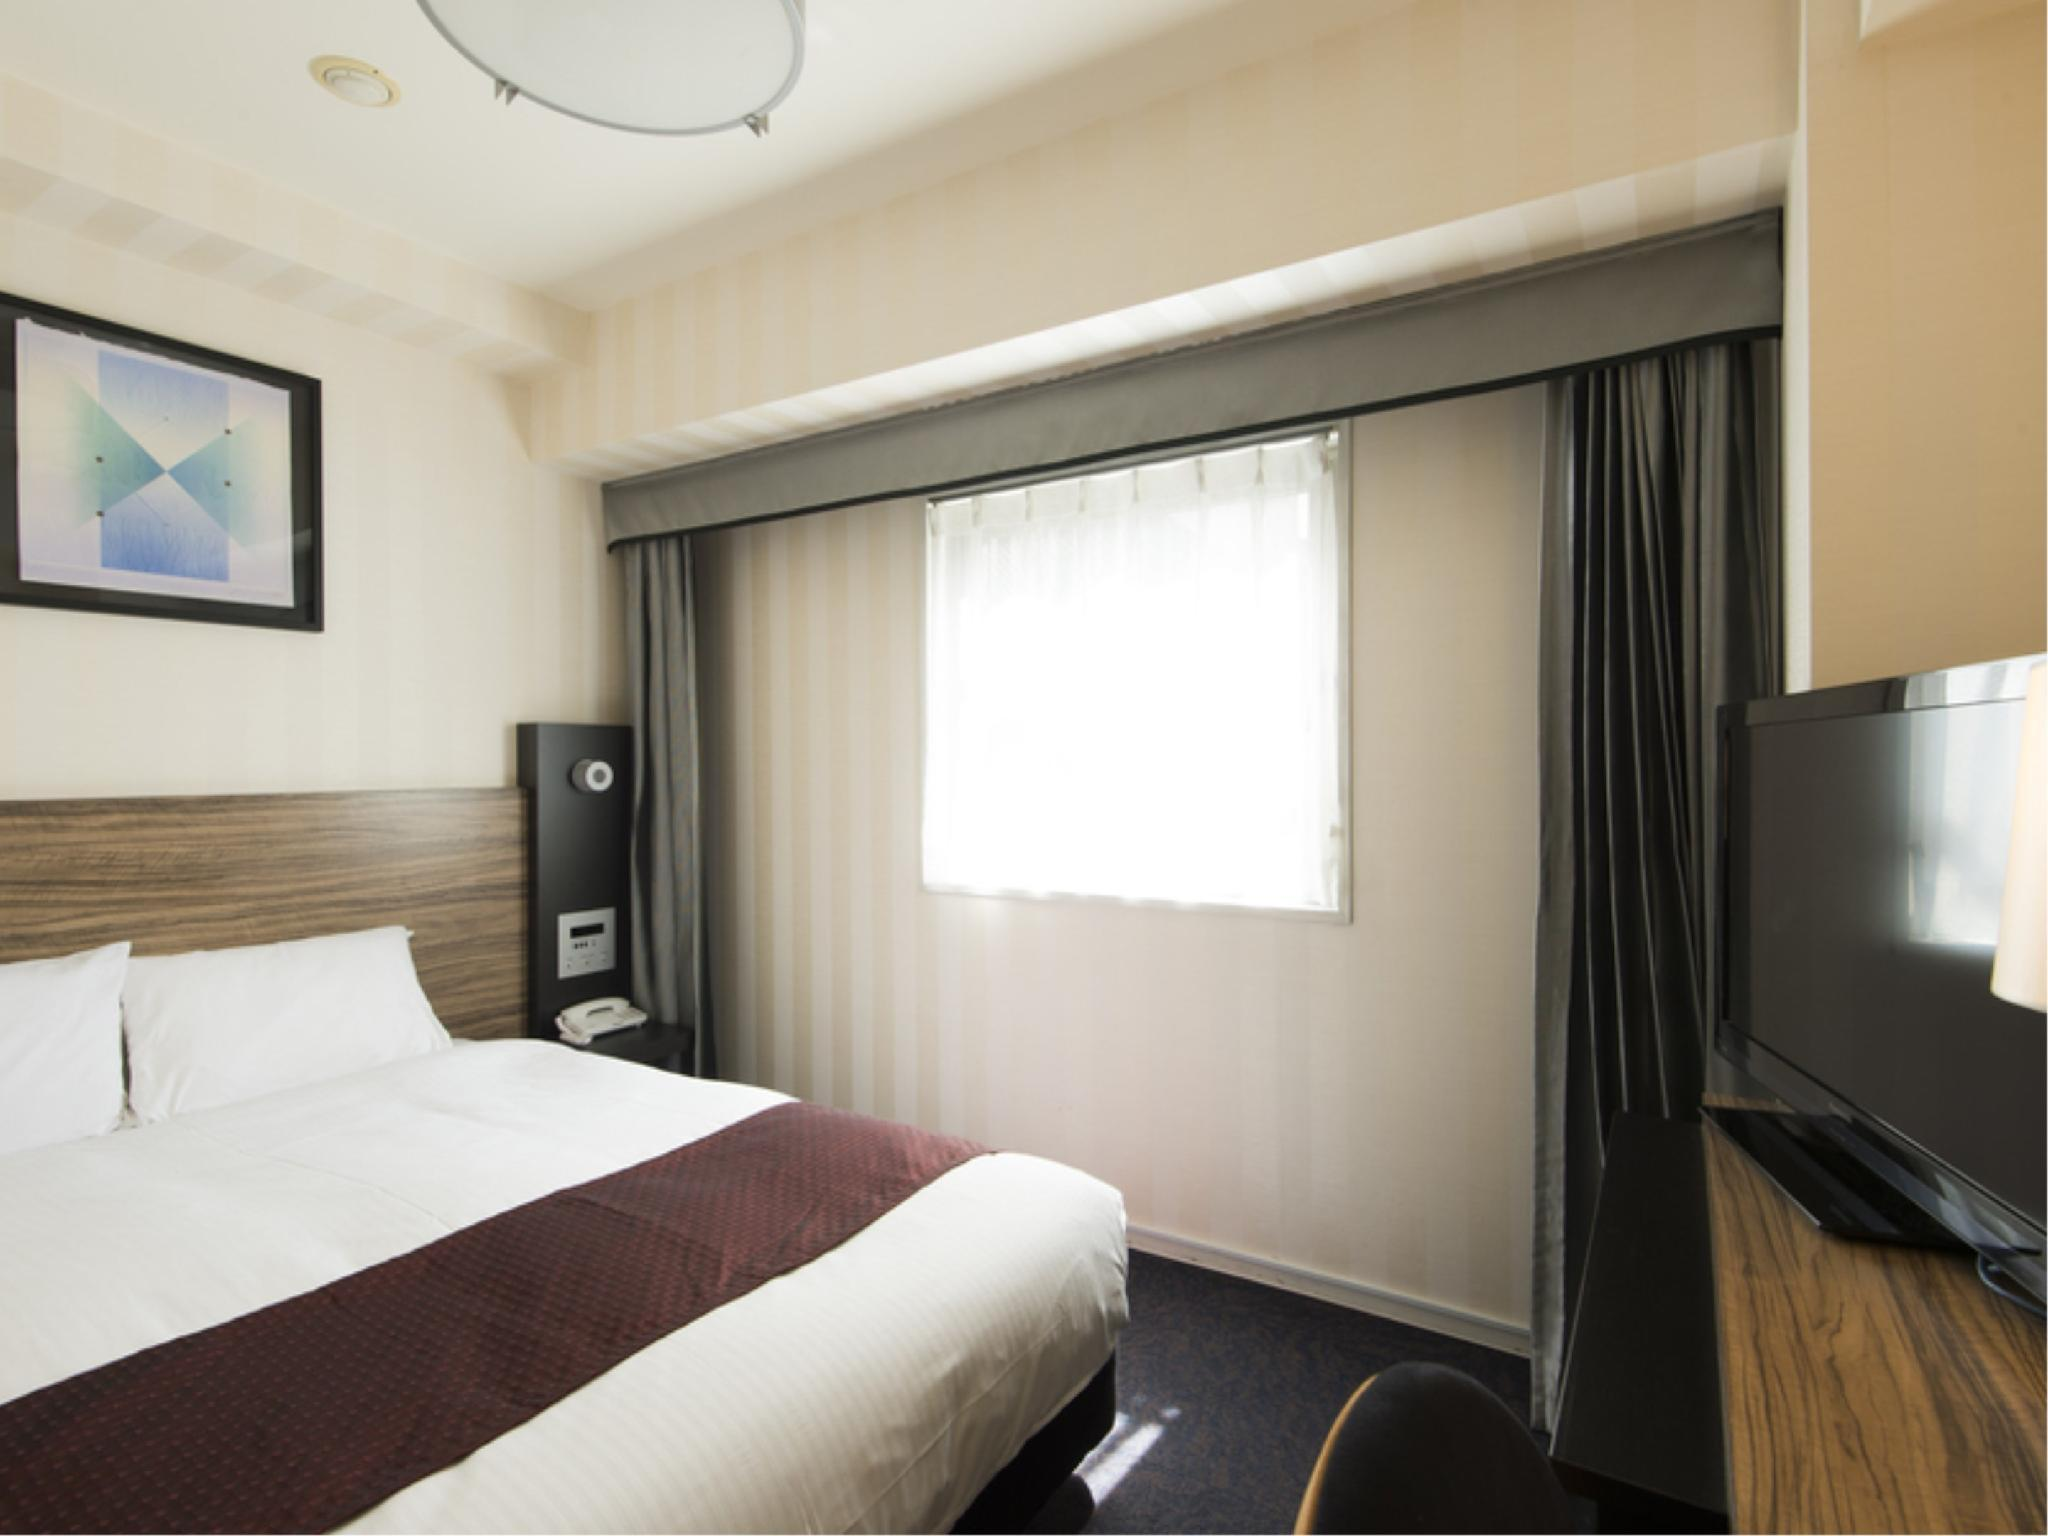 Economy Double Room (Main Building) *Weak mobile phone reception